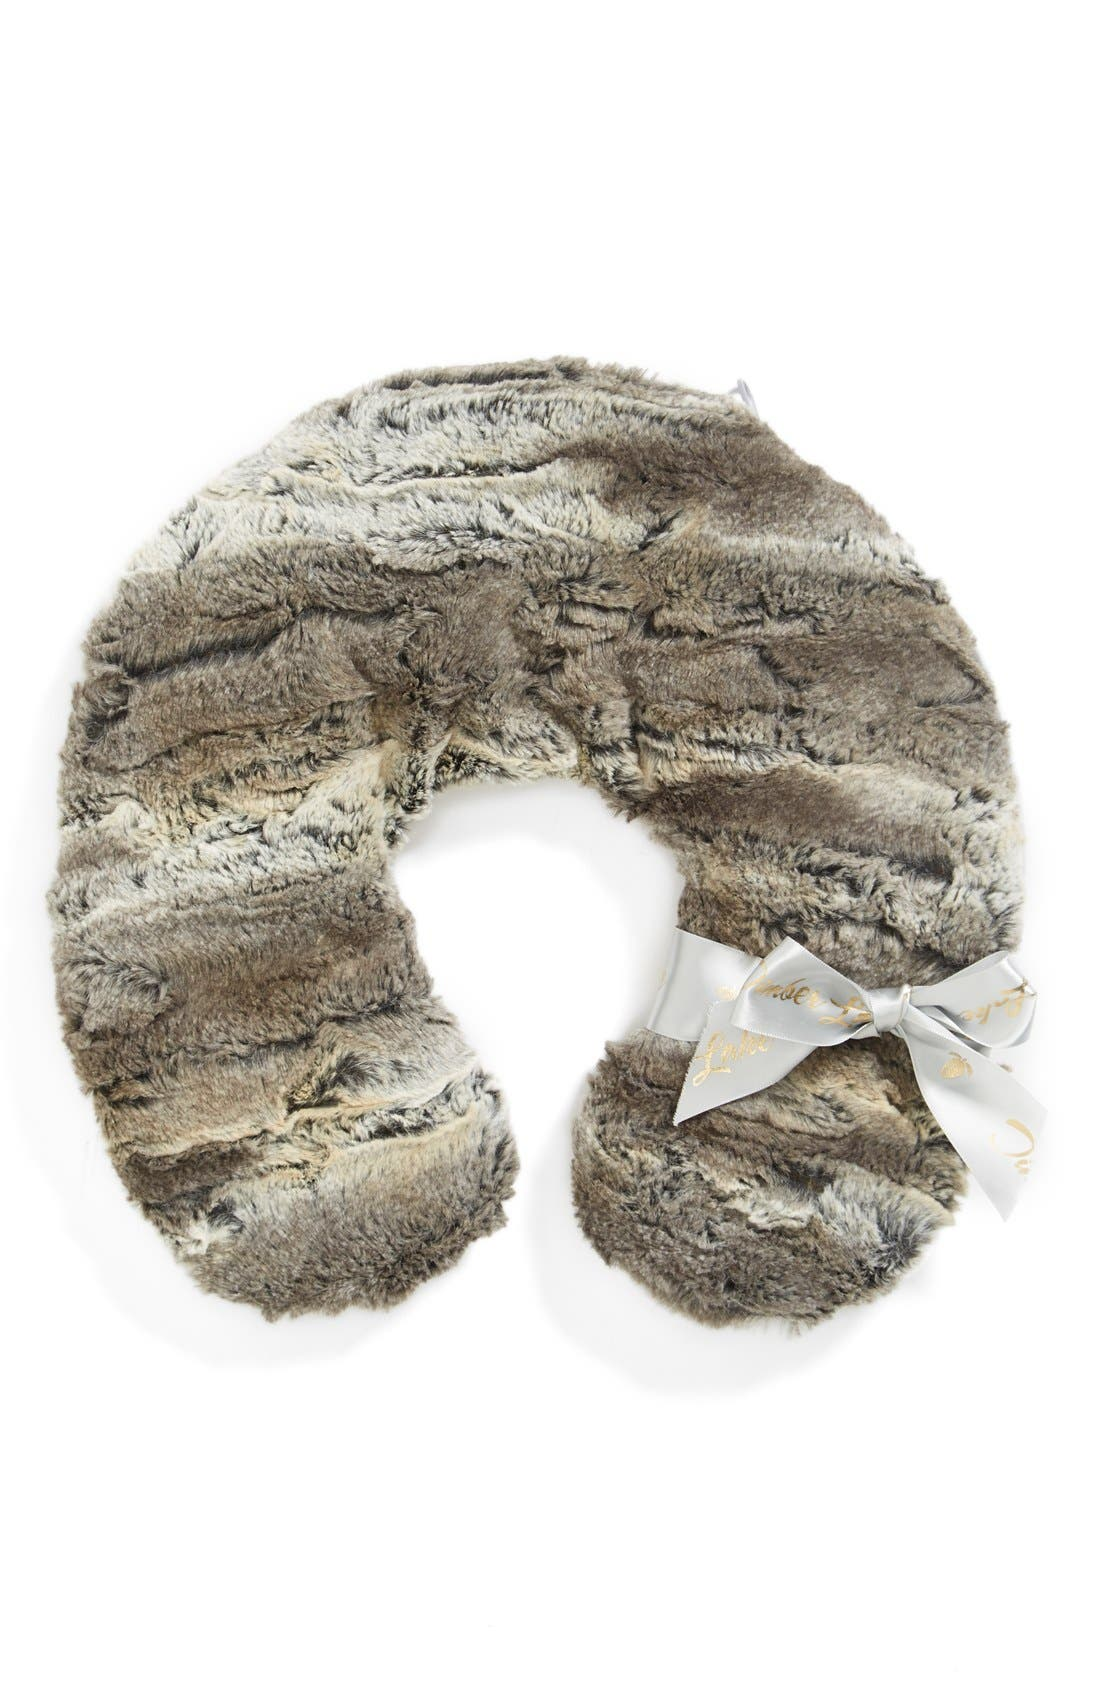 Alternate Image 1 Selected - Sonoma Lavender Timber Lake Neck Pillow (Limited Edition)